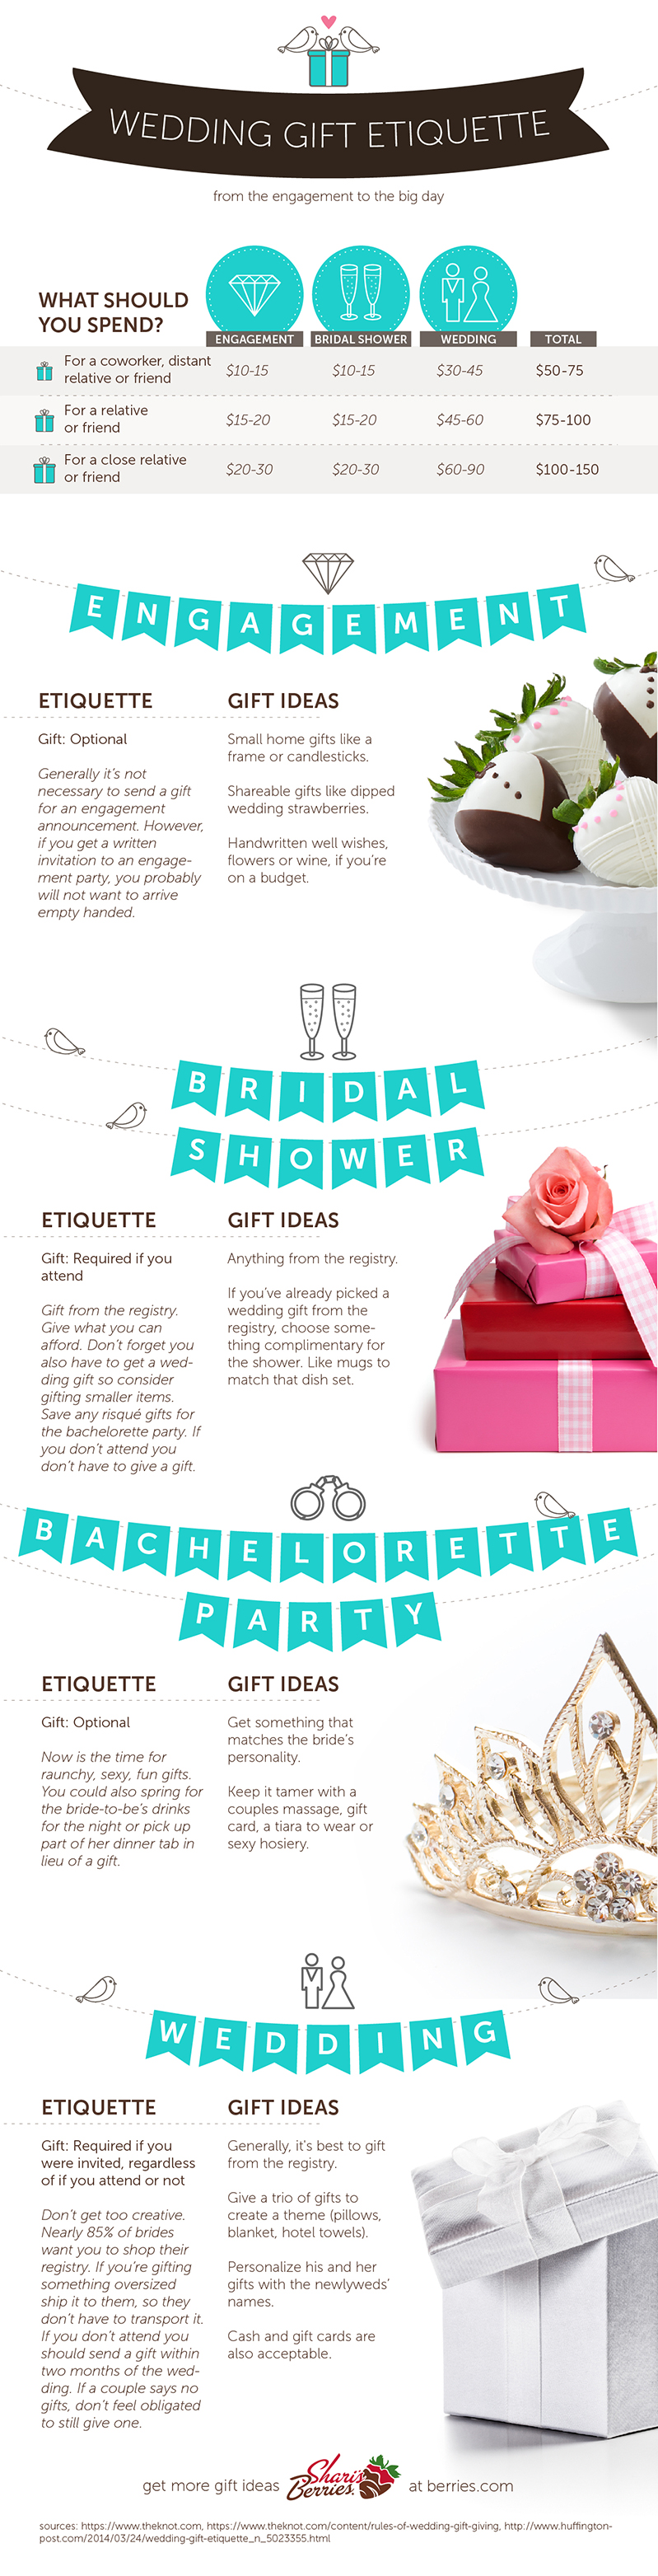 Wedding Gift Etiquette - Sharis Berries